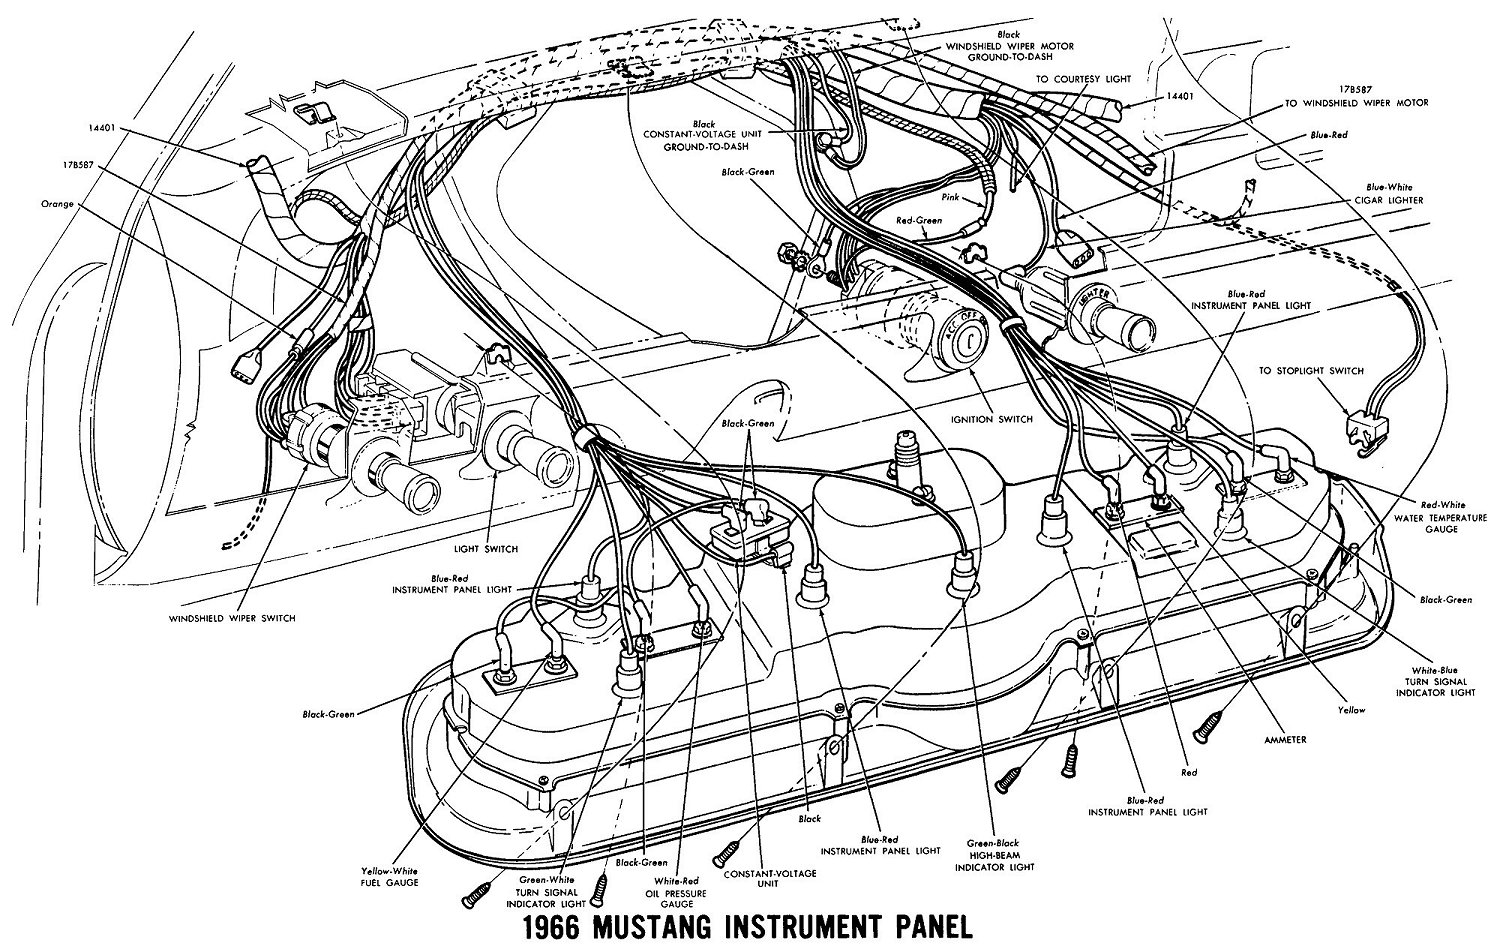 66instr 1966 mustang wiring diagrams average joe restoration 1957 Thunderbird Dash at webbmarketing.co